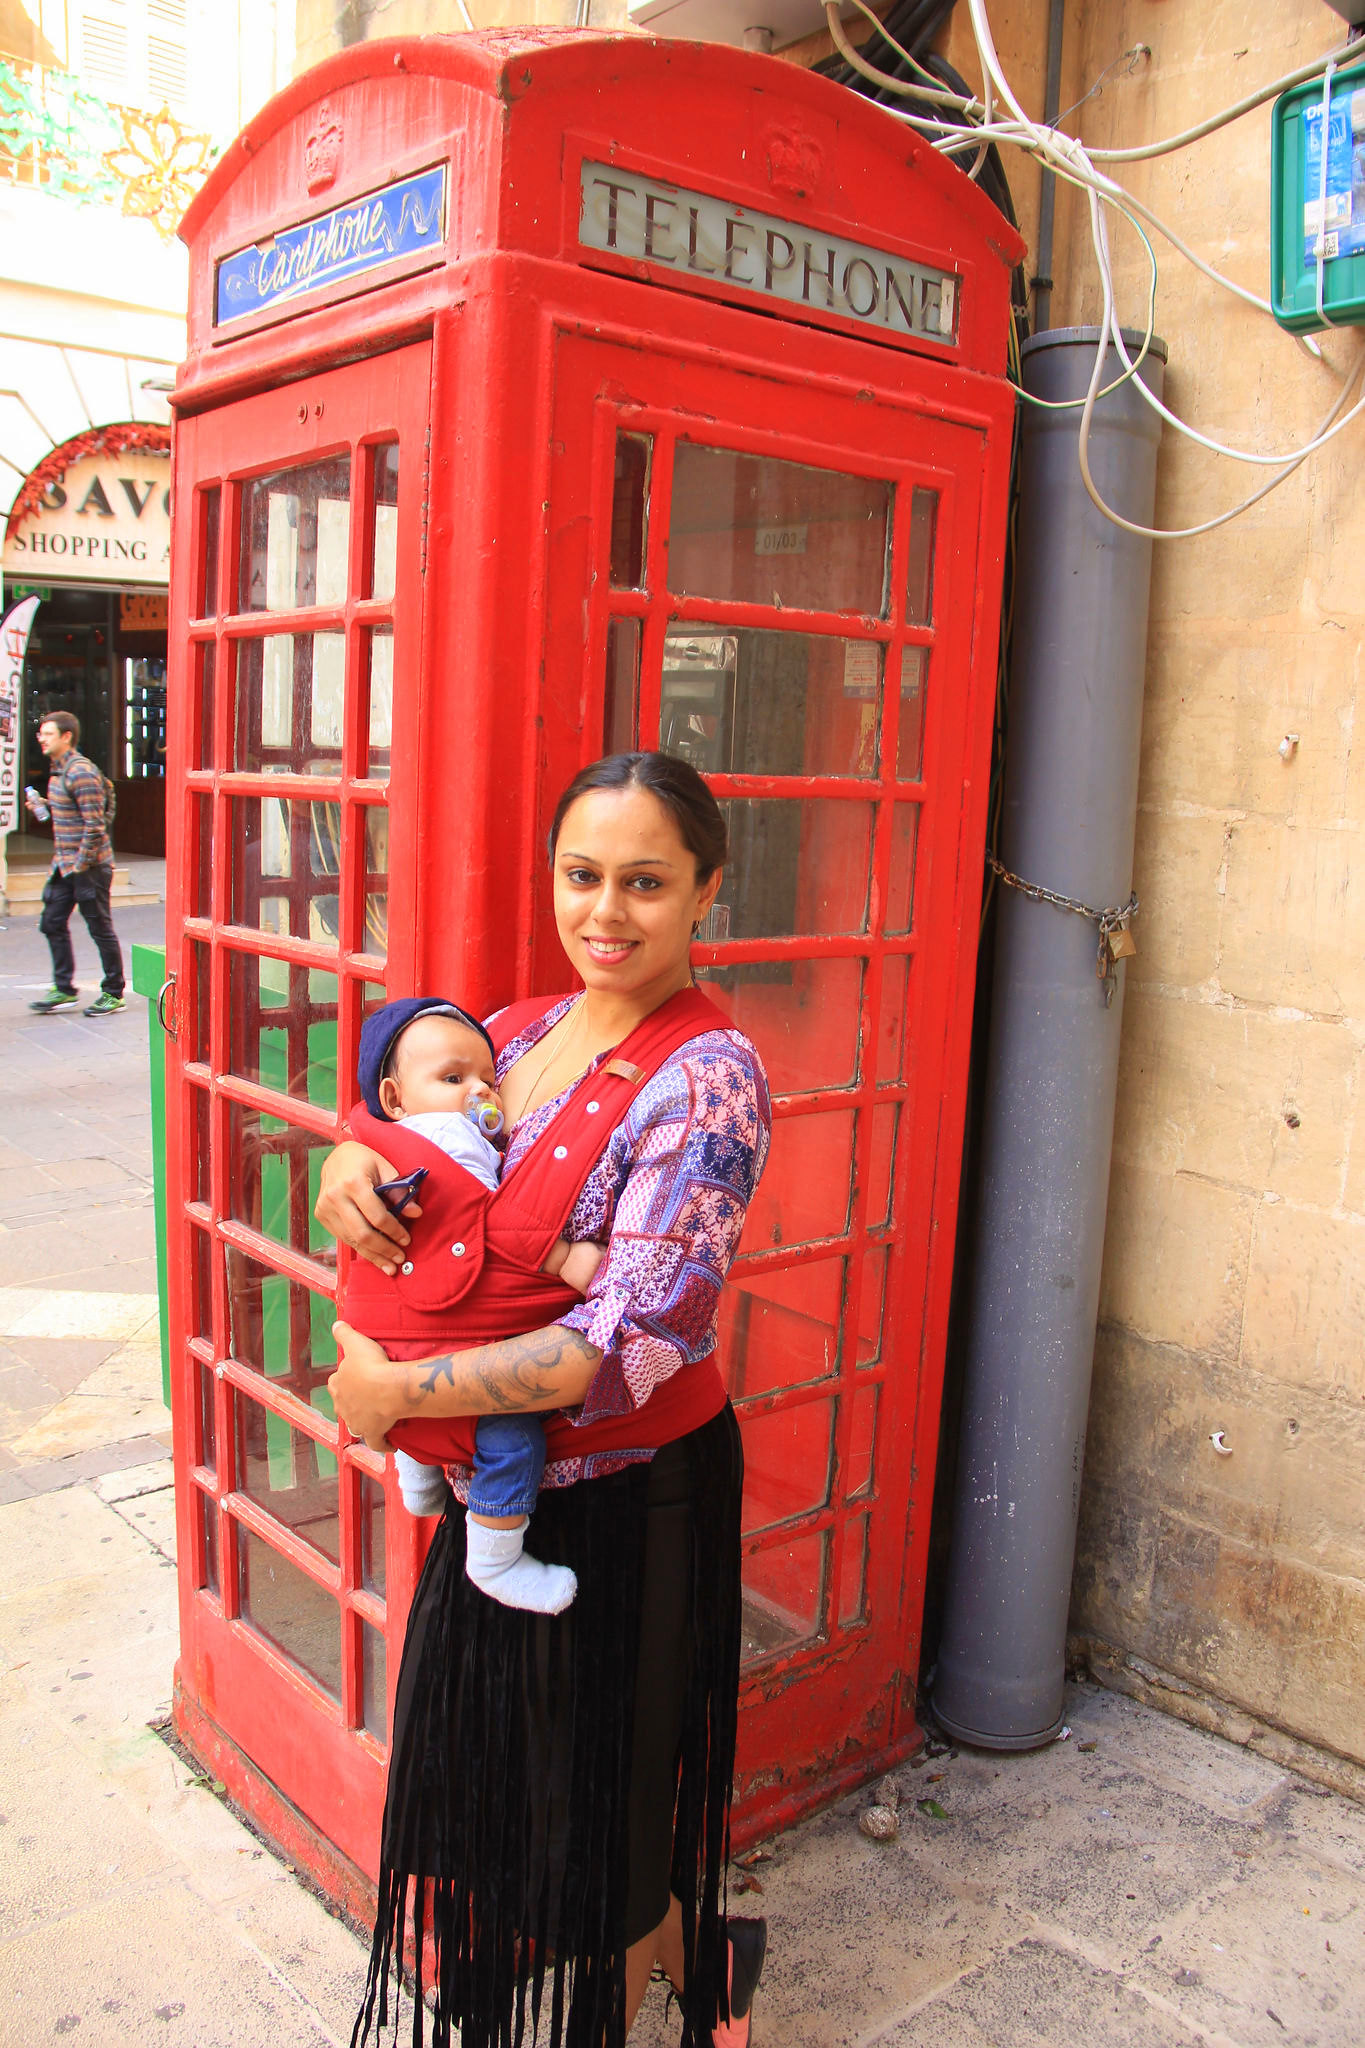 The red telephone booths of Valletta are very famous